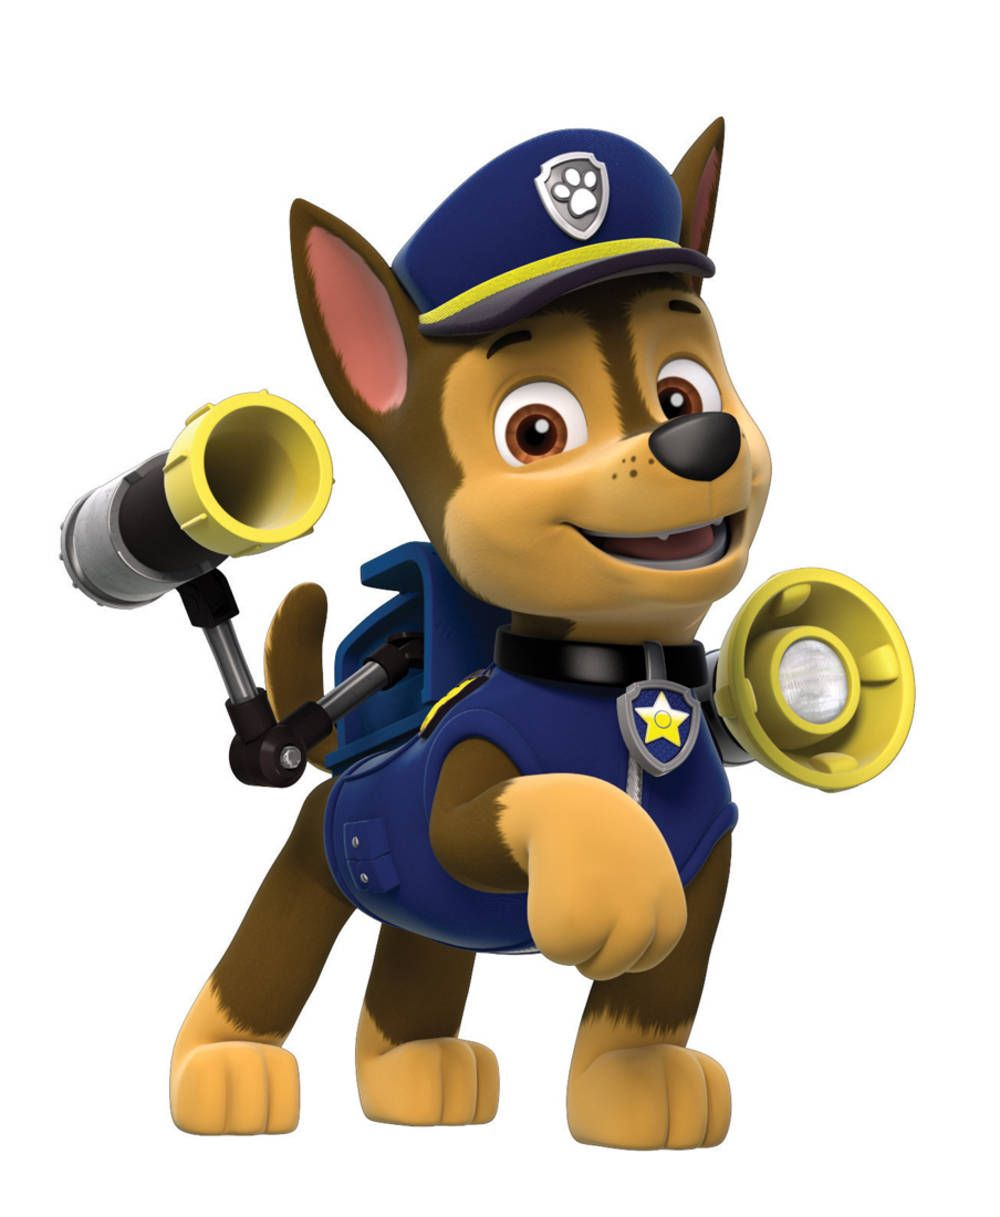 PAW PATROL CHASE Poster 3 Size Options Includes a Free.